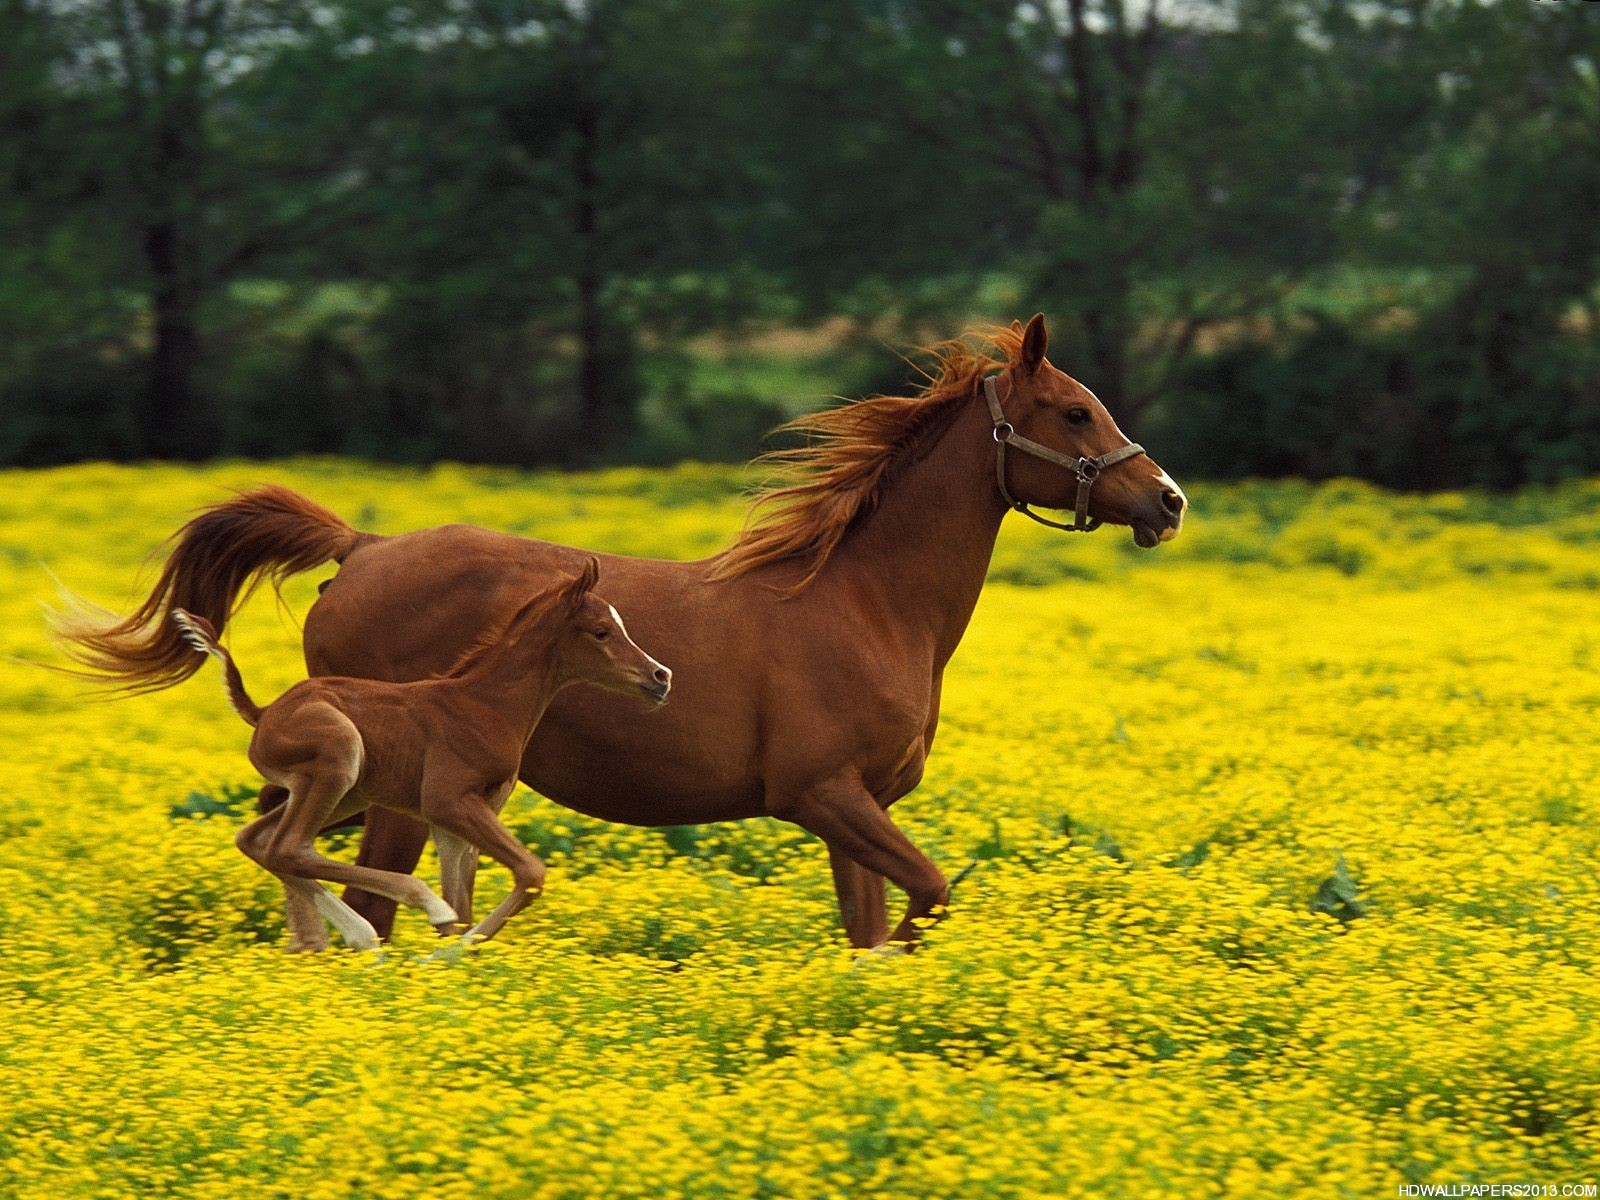 Horse Wallpapers for Desktop – HD Wallpapers Horse Wallpapers for